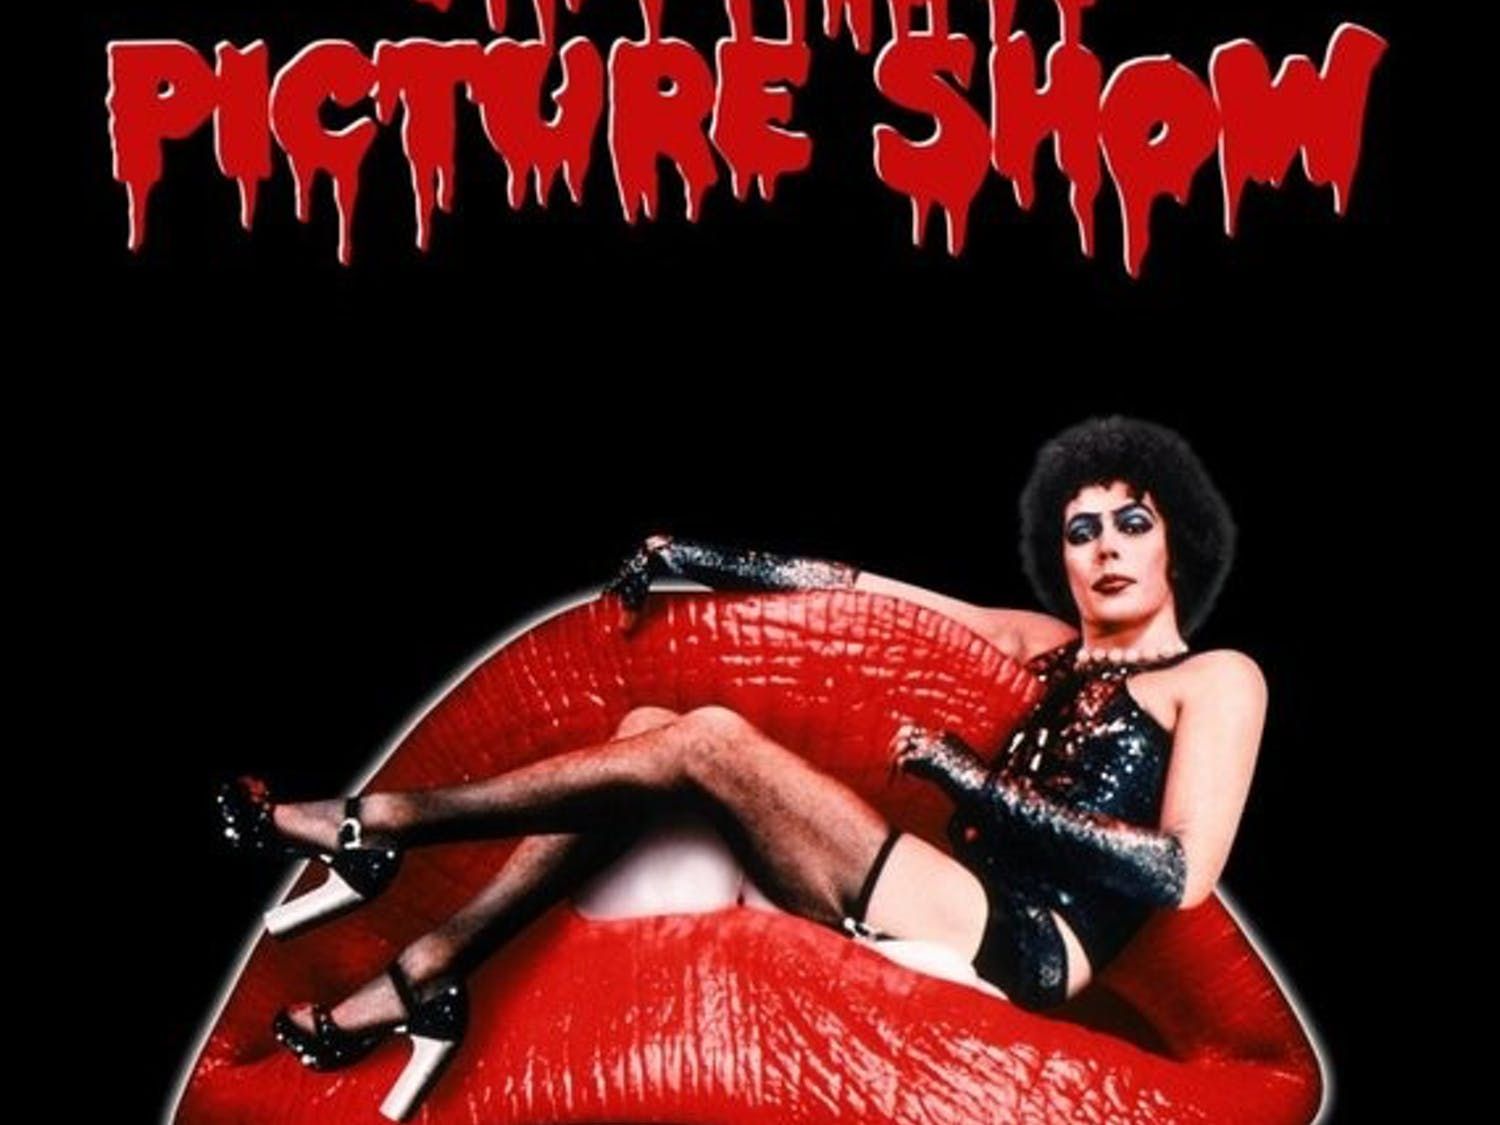 """Rocky Horror"" is a legacy, a cultural monument and a beacon for anyone who feels outcasted."